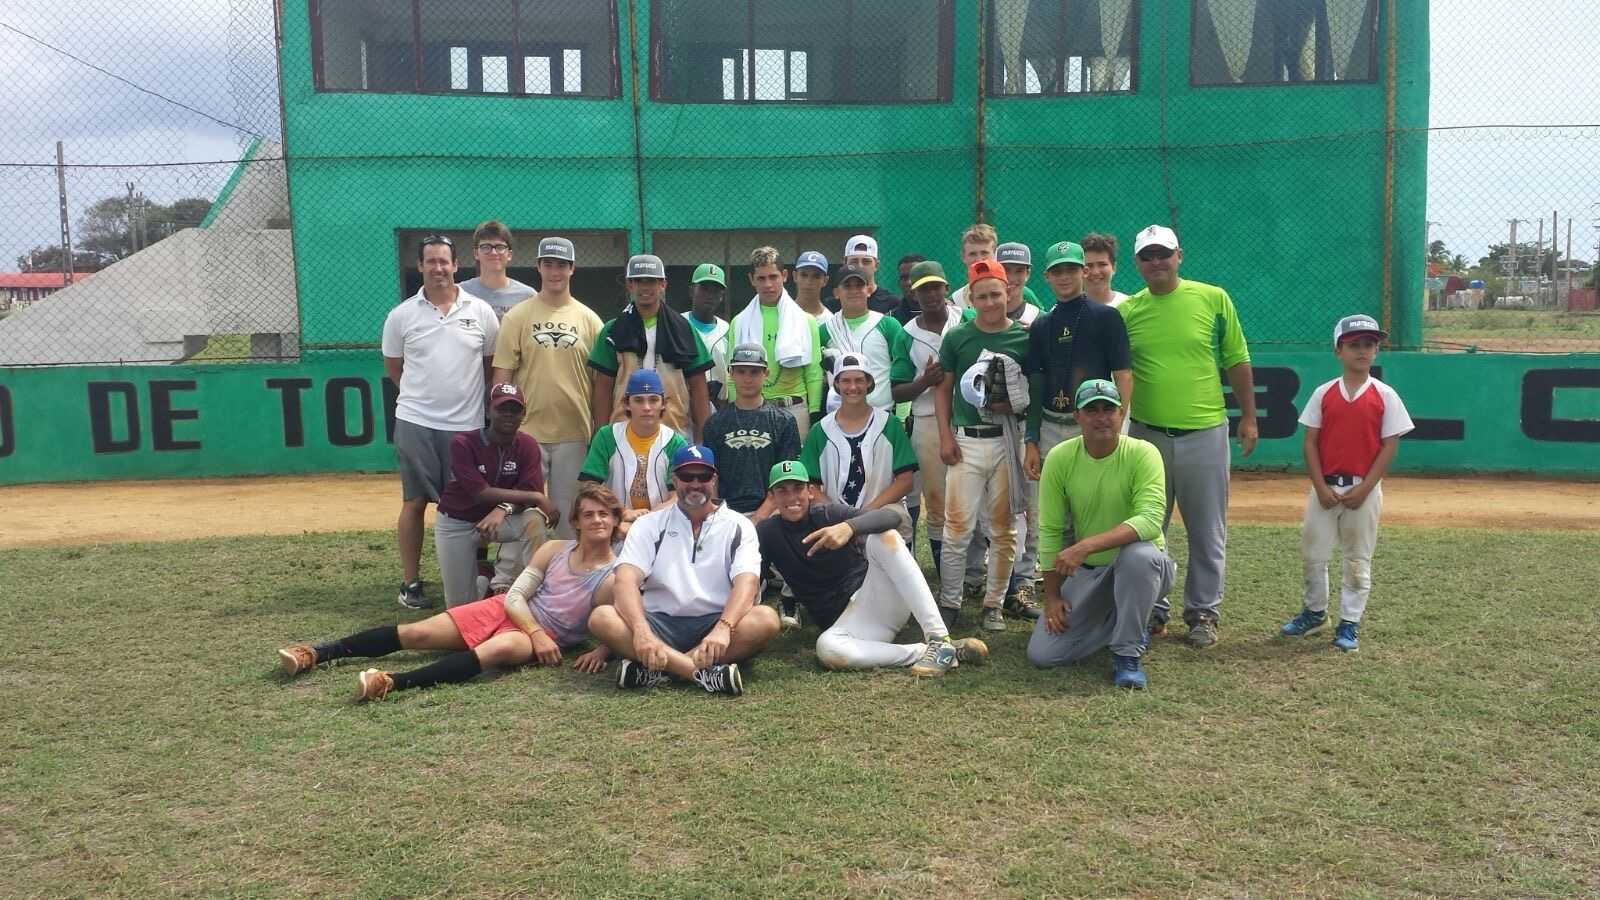 Baseball players venture to Cuba to give back to community